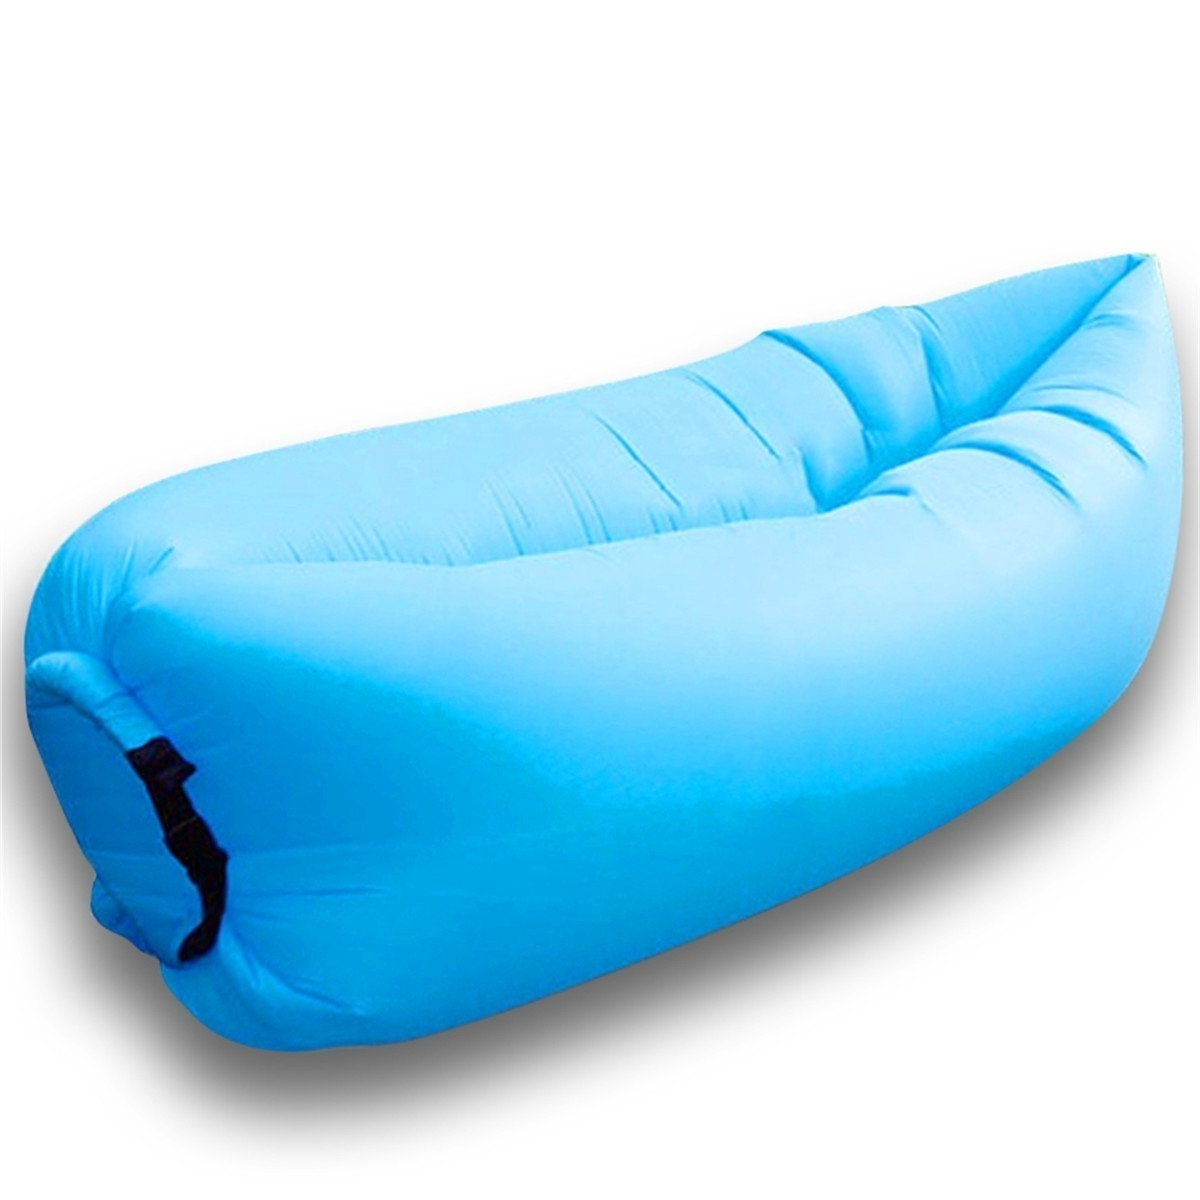 Inflatable Sofas And Chairs Throughout Trendy Inflatable Sofa Chair 56 With Inflatable Sofa Chair (Gallery 8 of 20)